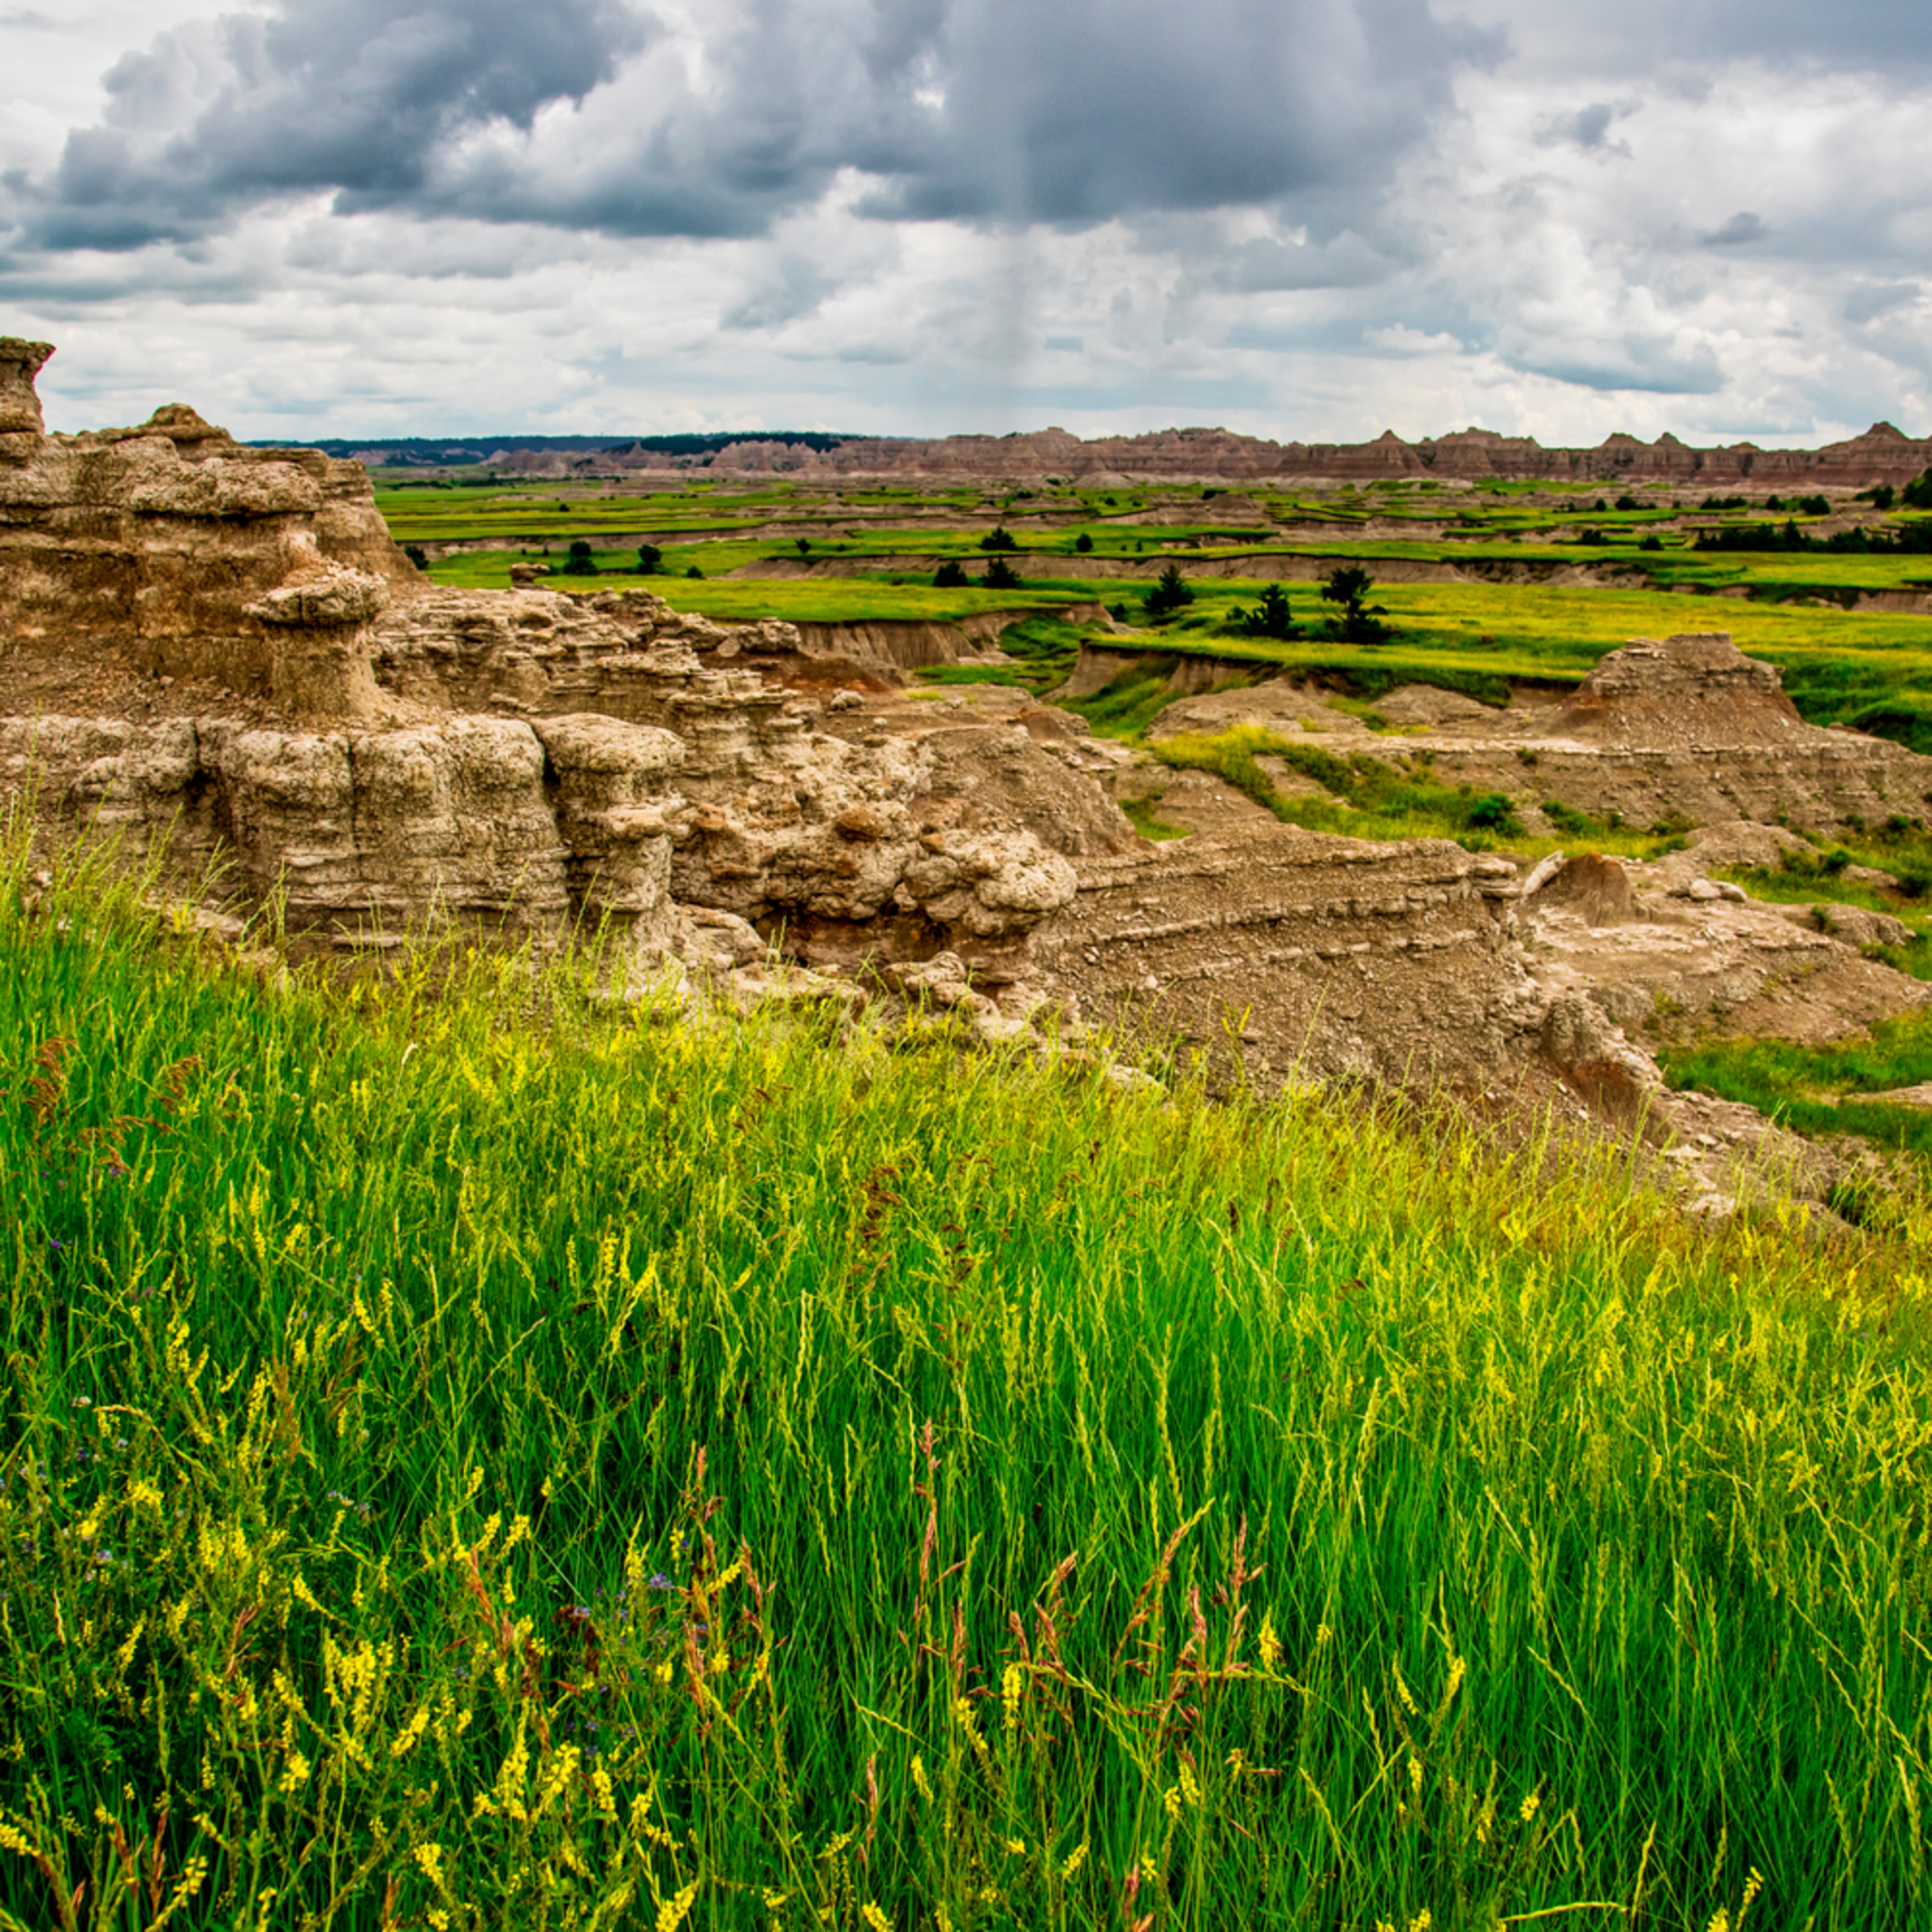 Andy crawford photography badlands national park 180625 002 suc09l